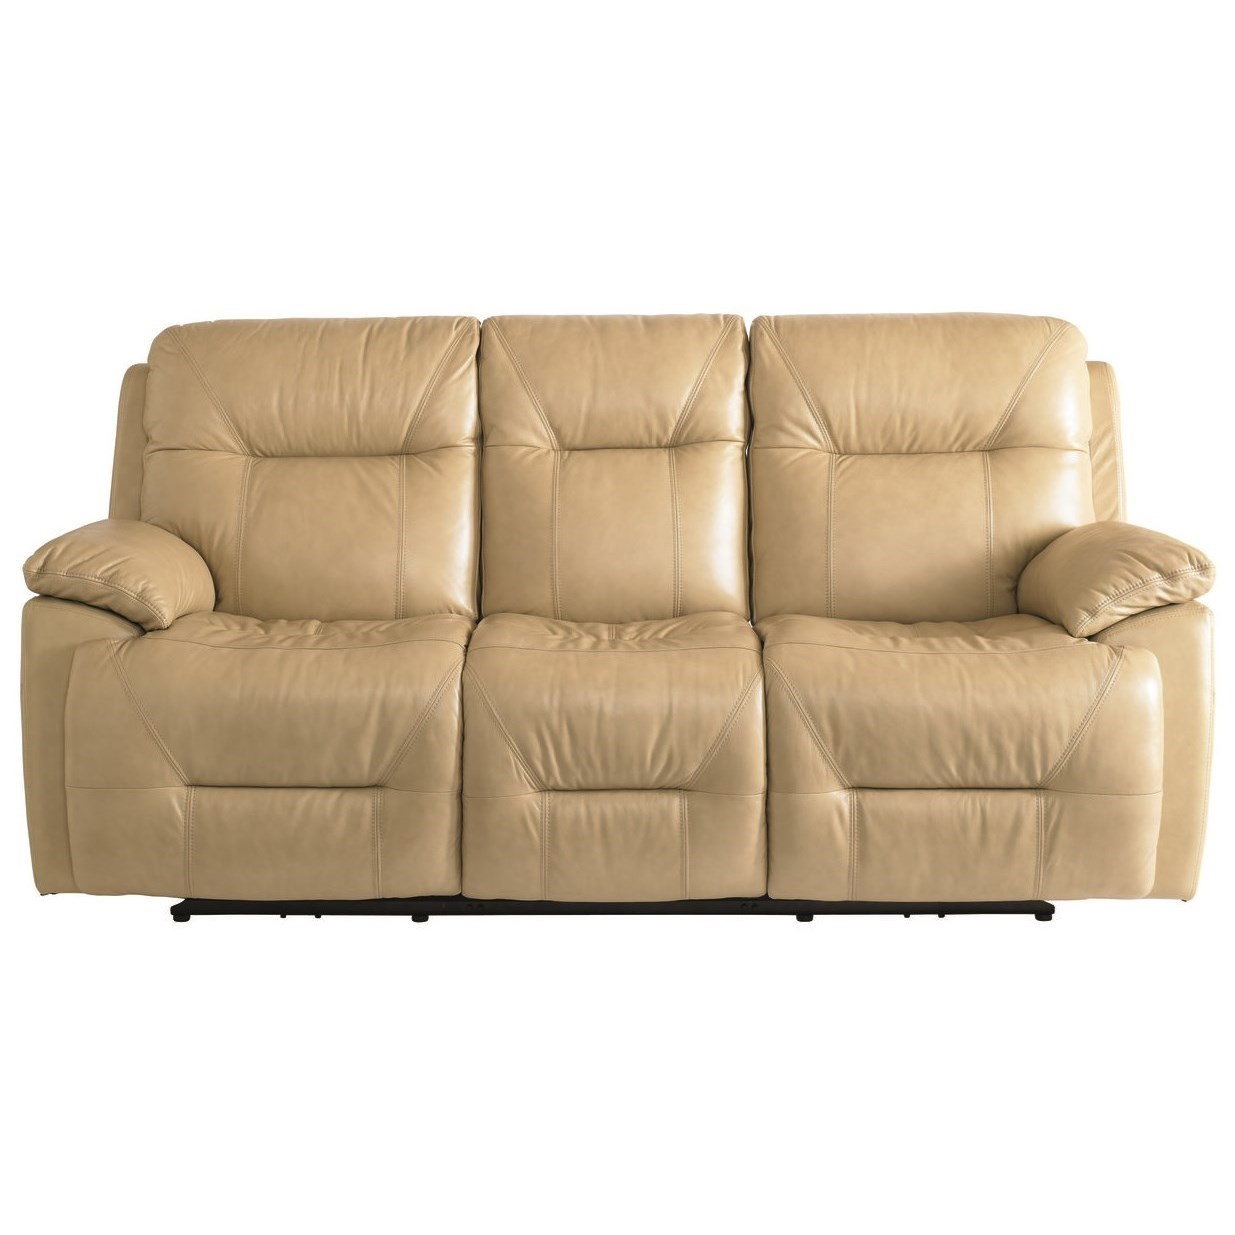 Bassett Epic Power Reclining Lay-Flat Sofa - Item Number: 3705-P62S